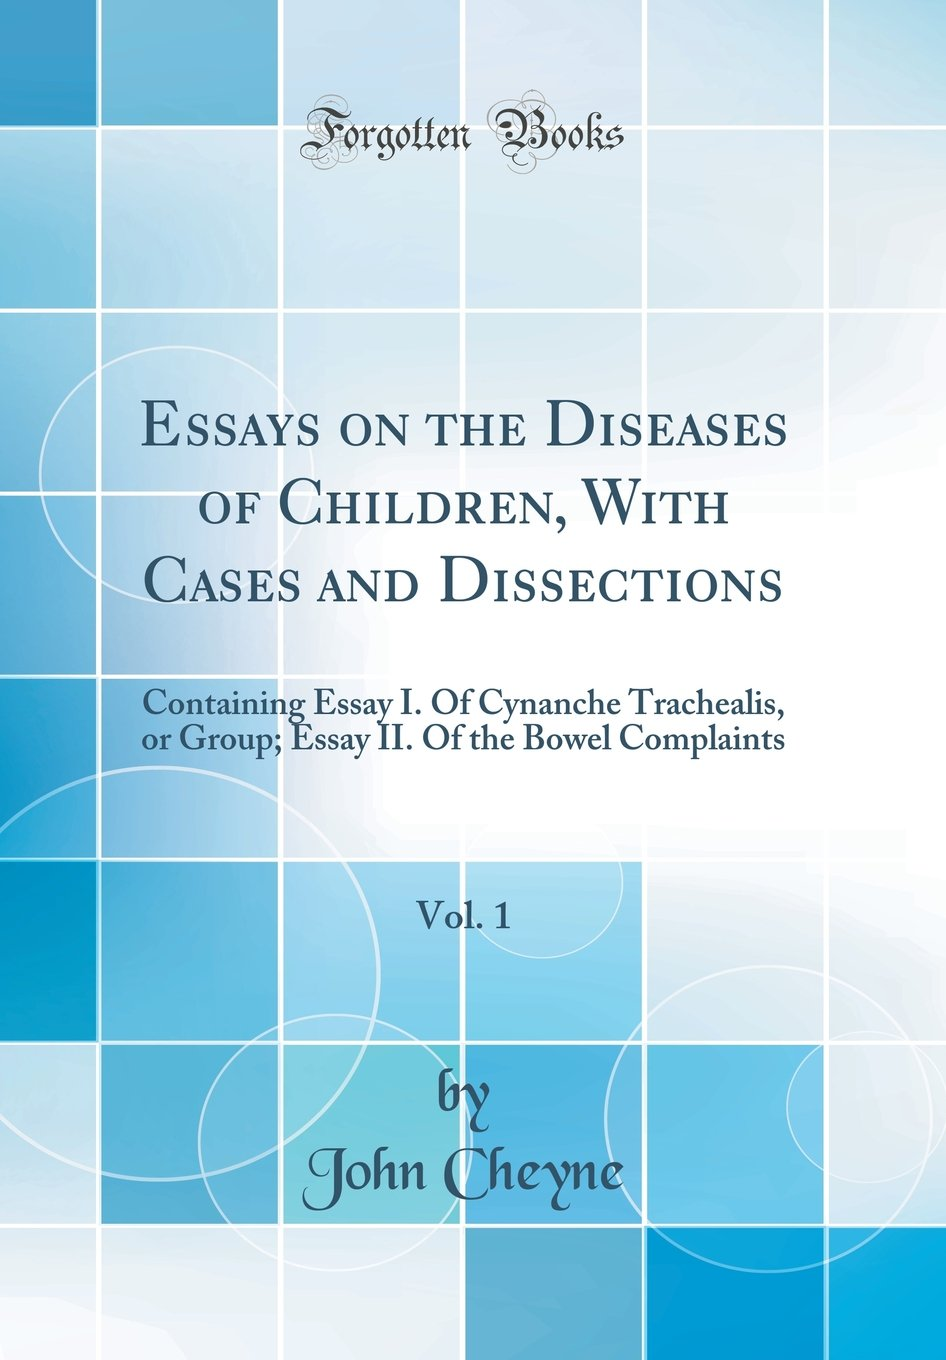 Read Online Essays on the Diseases of Children, with Cases and Dissections, Vol. 1: Containing Essay I. of Cynanche Trachealis, or Group; Essay II. of the Bowel Complaints (Classic Reprint) PDF